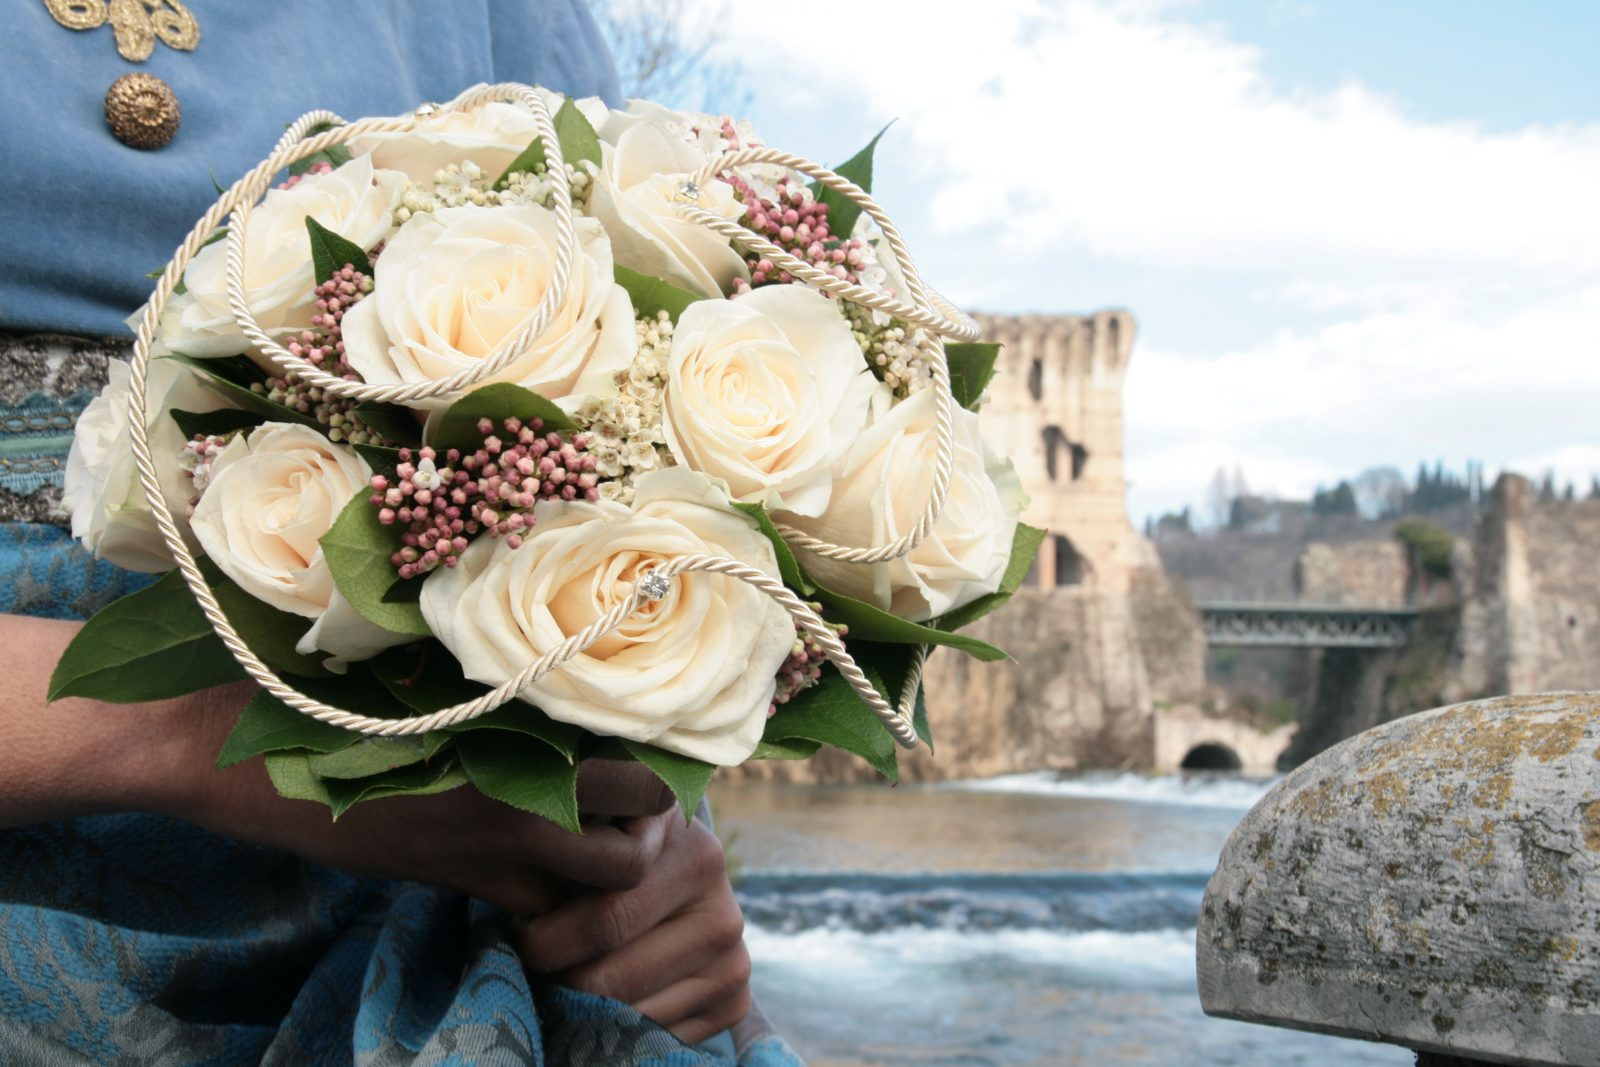 Il bouquet di rose per la sposa interpretato da Patrizia di Braida